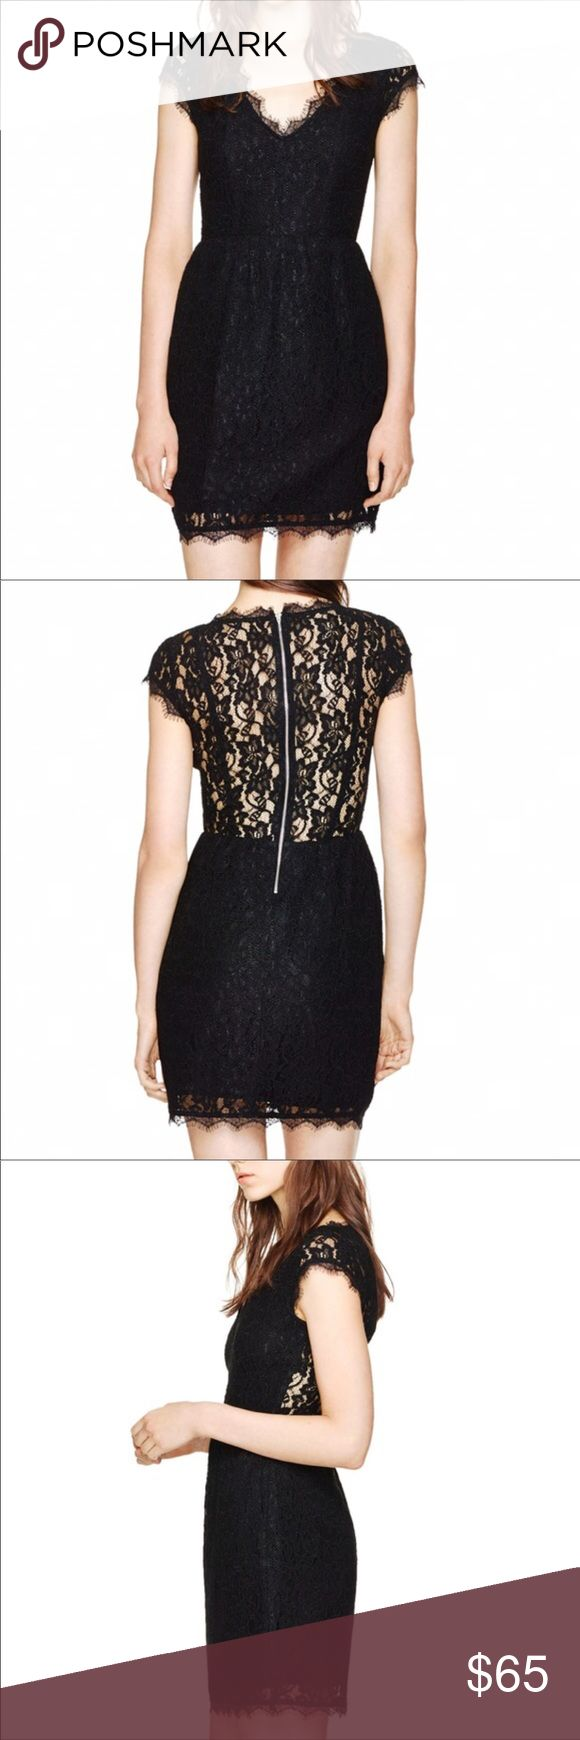 Aritzia Babaton Tobias Lace Dress - Black, 6 Waist defining and super flattering Aritzia Babaton lace dress. Made of black lace, lined and features hidden side pockets. The back is sheer as you can see in the pictures to show a little skin.  Excellent preowned condition.  Offers welcomed!  P15 Aritzia Dresses